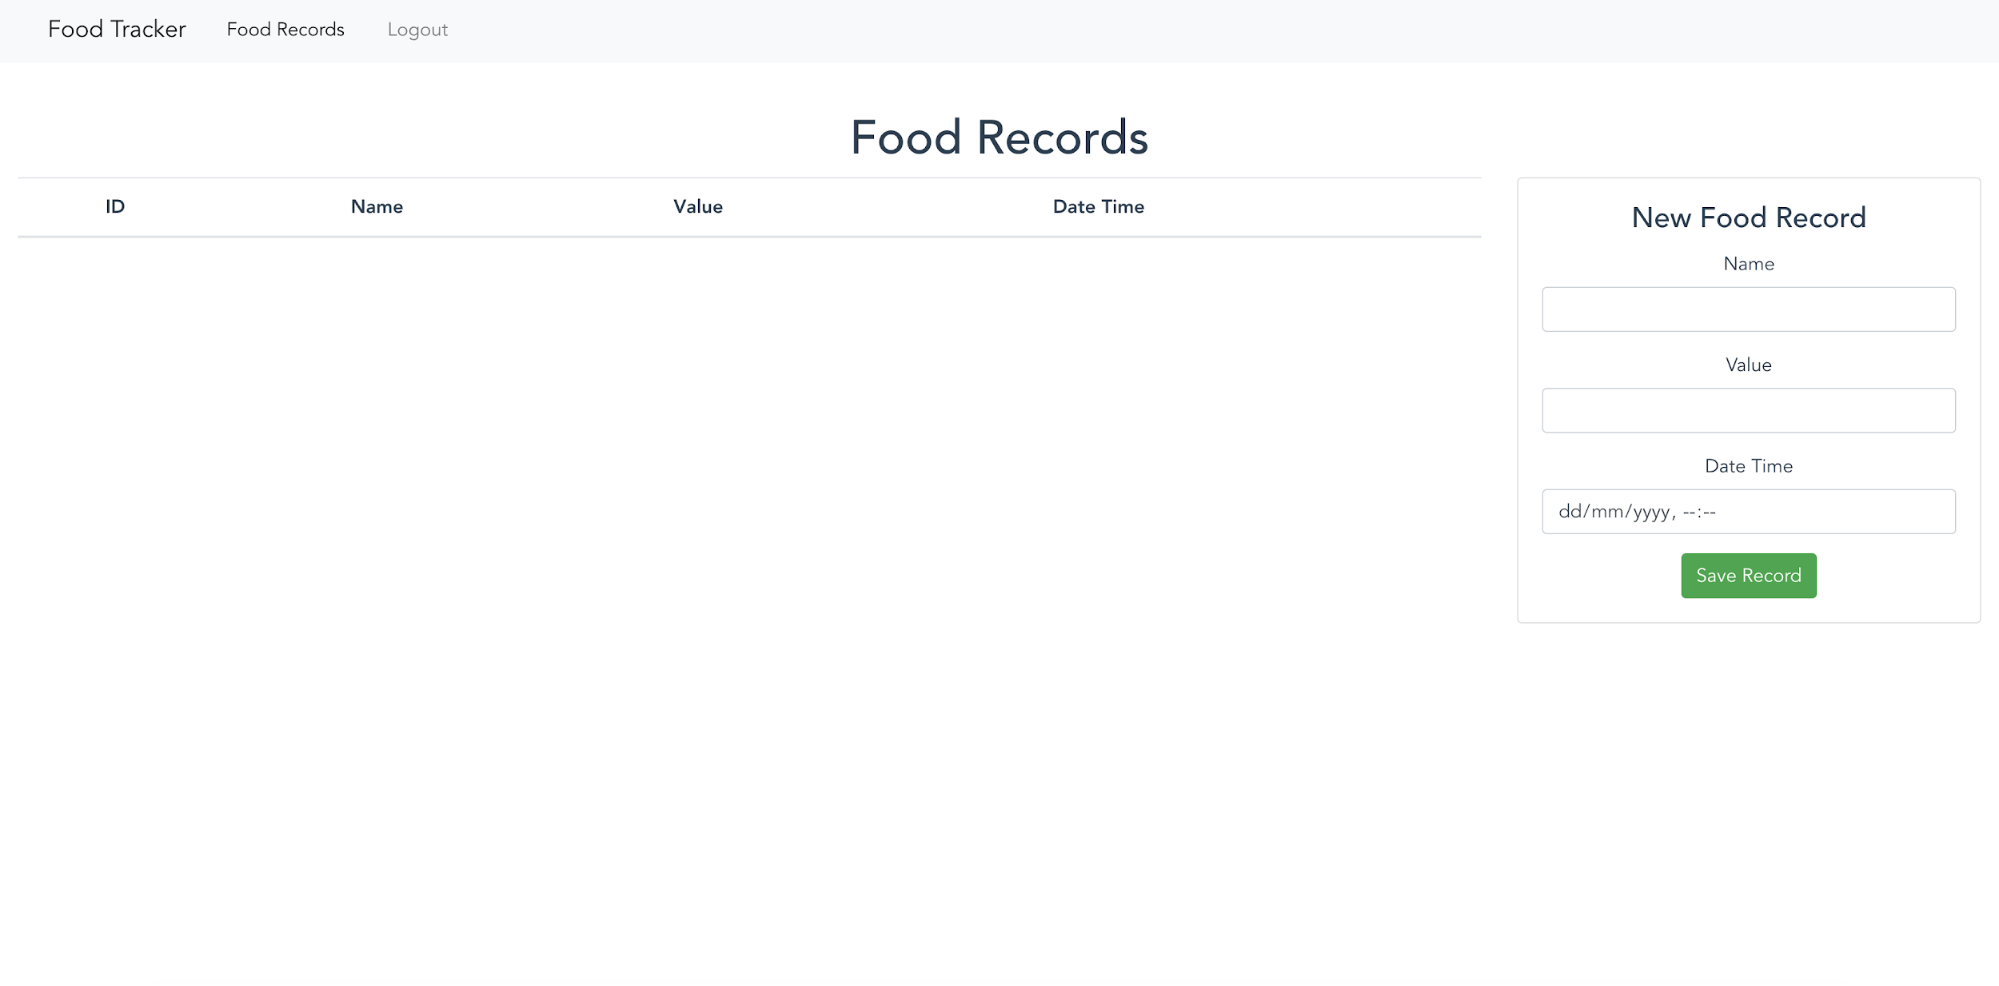 Food Tracker food records page